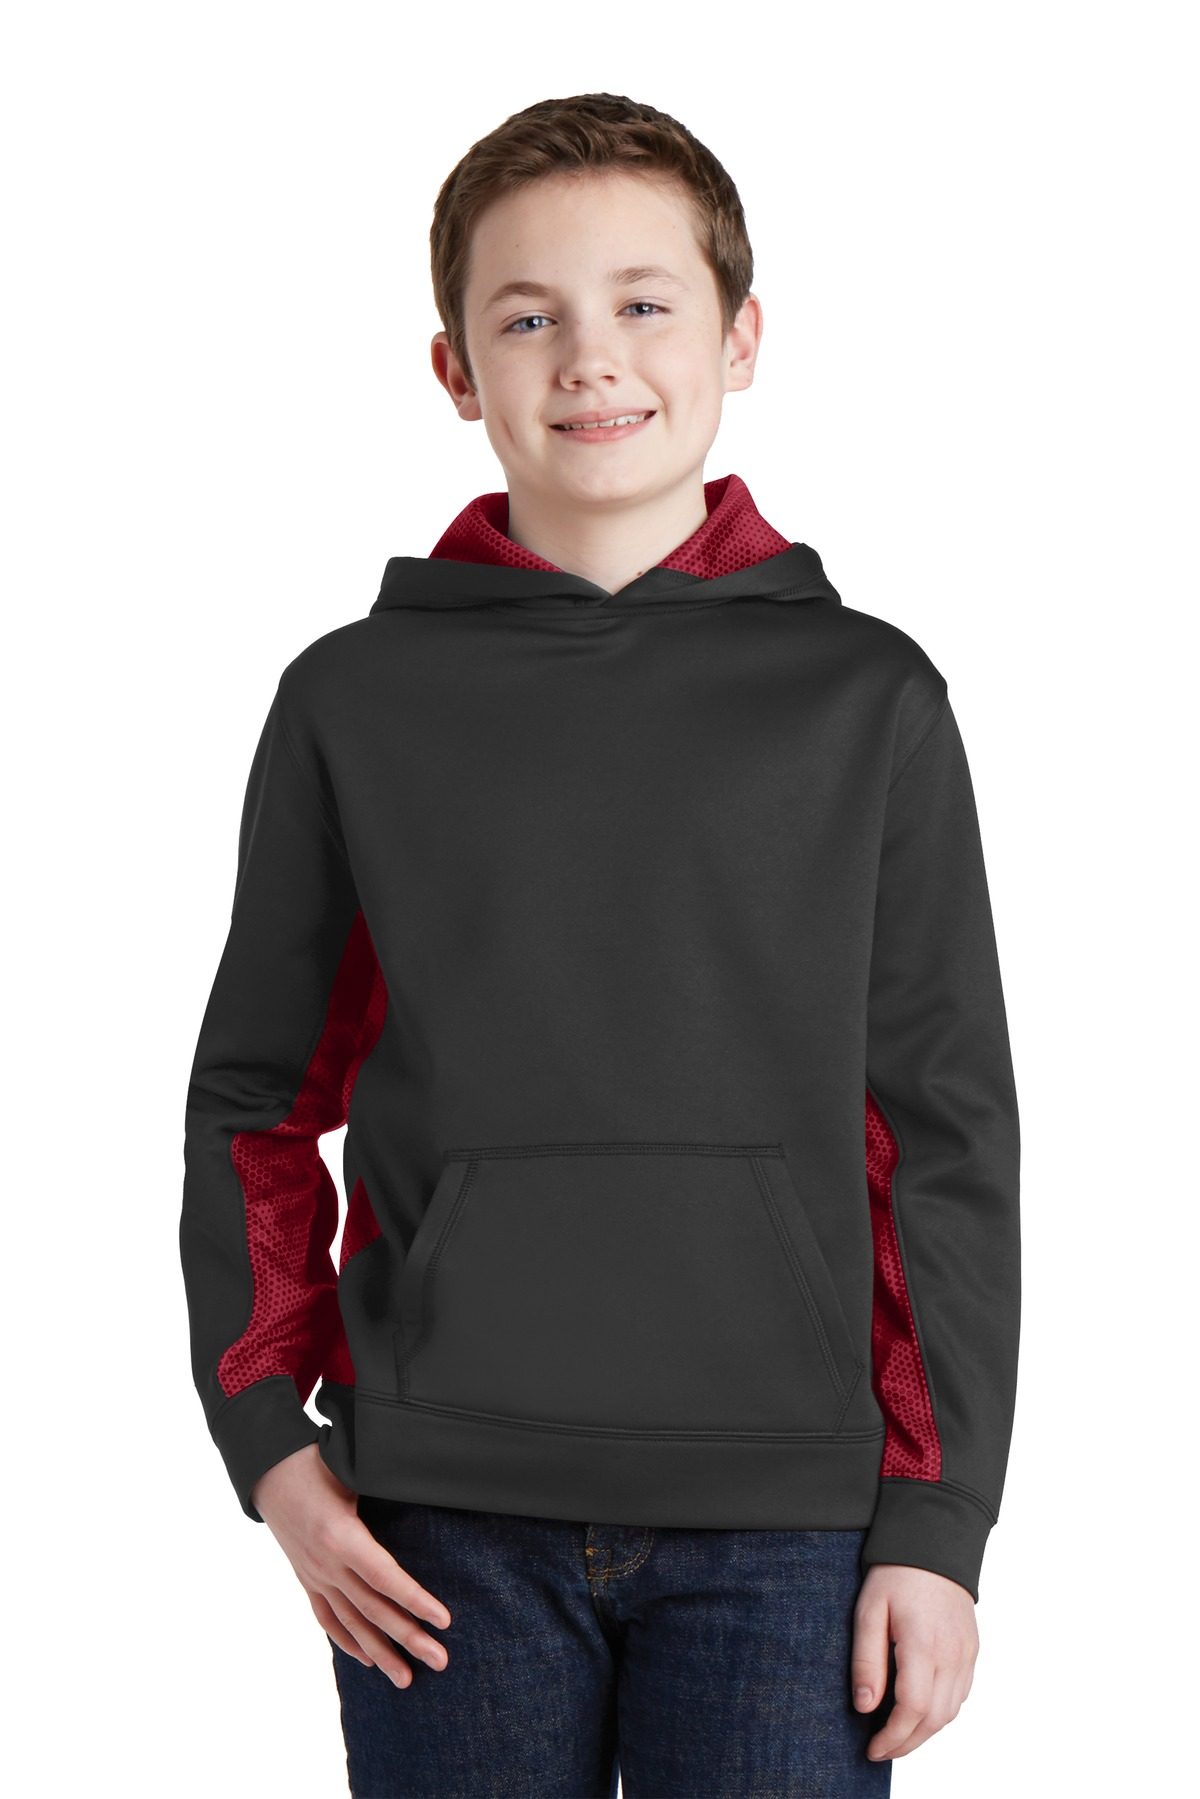 Sport-Tek  Youth Sport-Wick  YST239 - CamoHex Fleece Colorblock Hooded Pullover